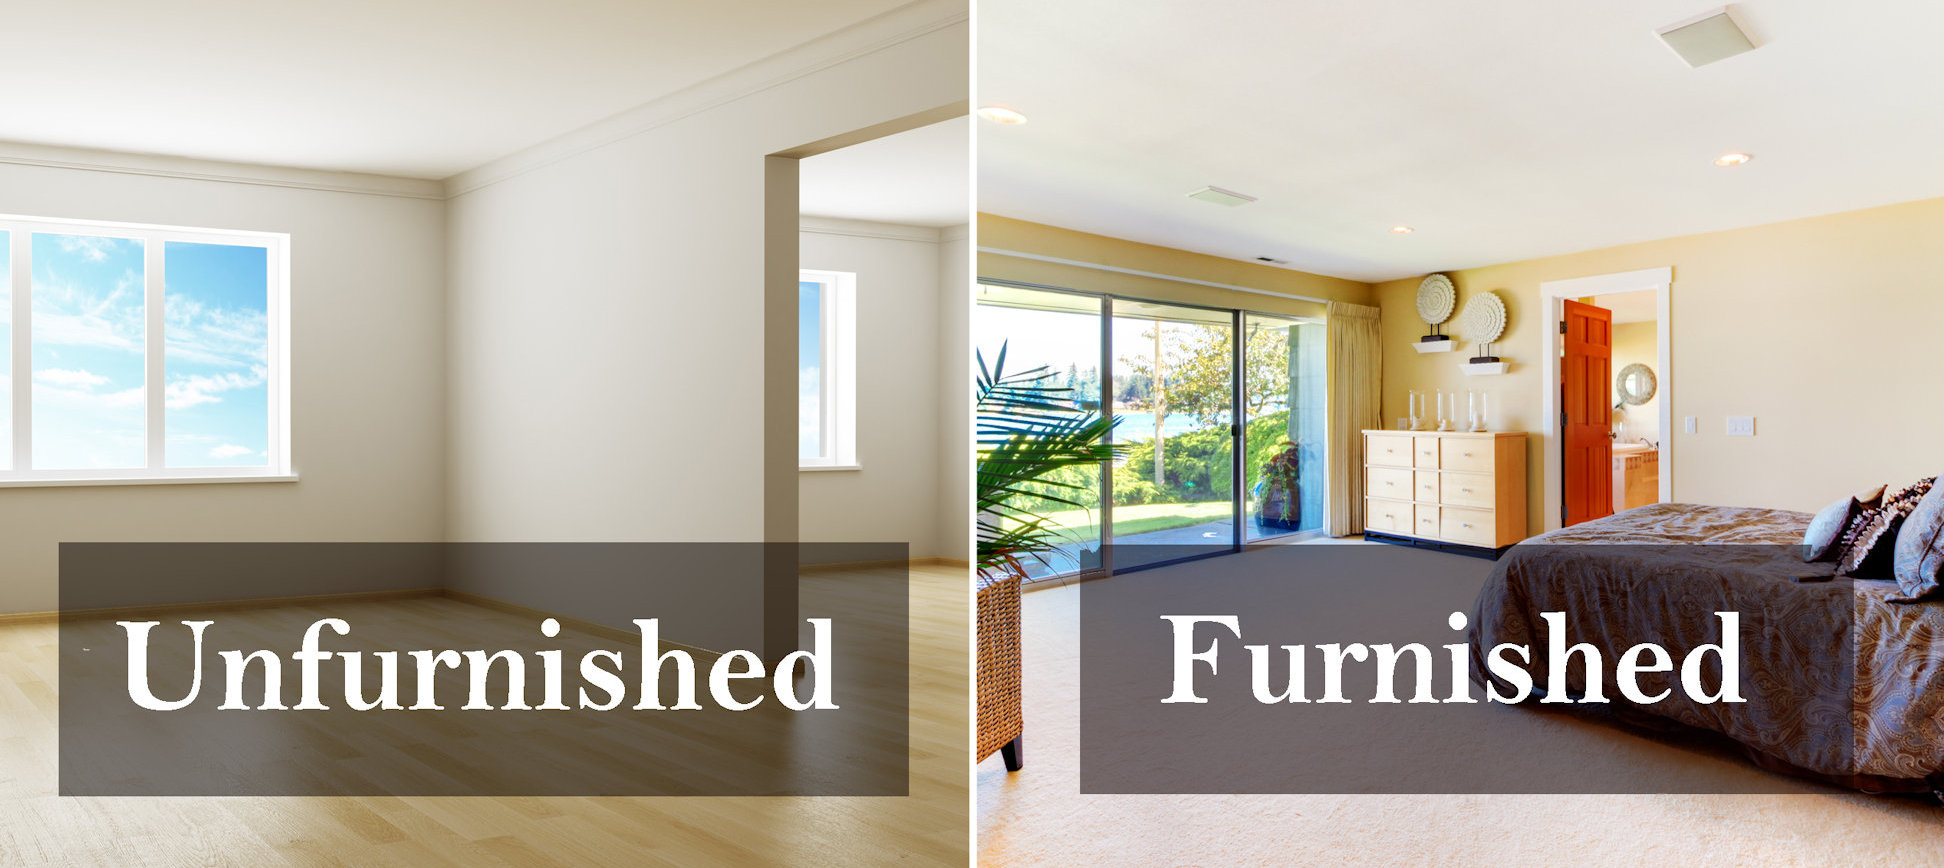 furnishedunfurnished